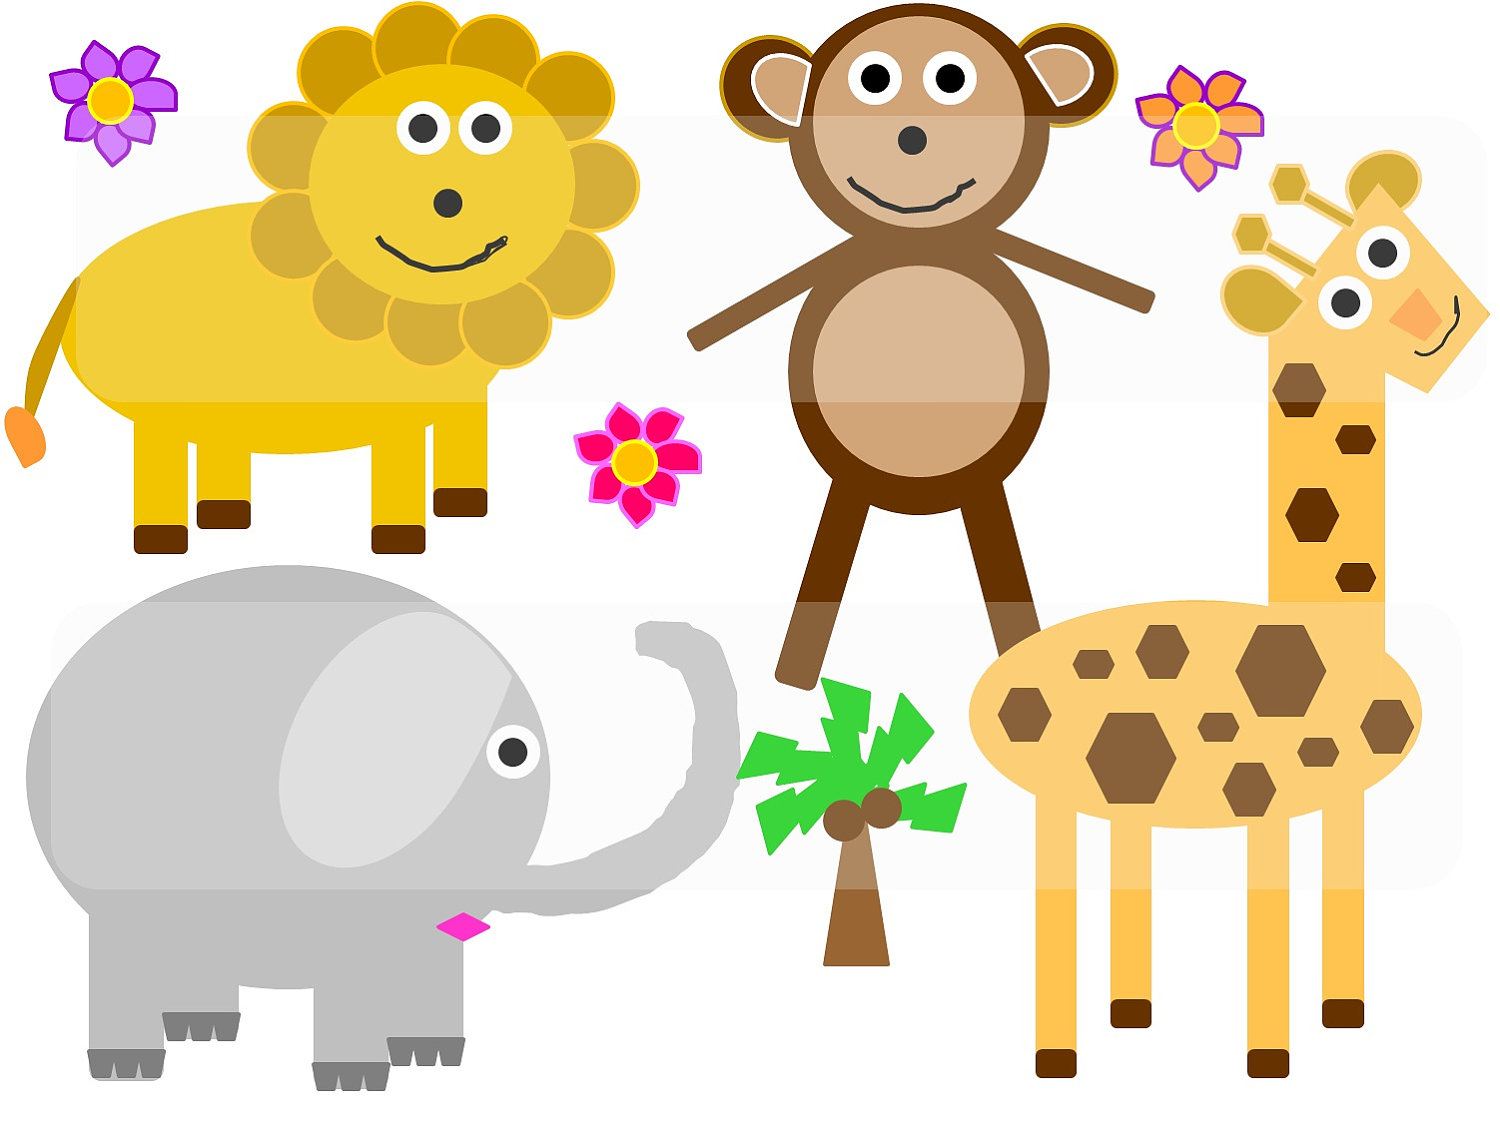 Cartoon jungle animal clipart jpg free download Cartoon Jungle Animal Pictures - Free Clipart jpg free download